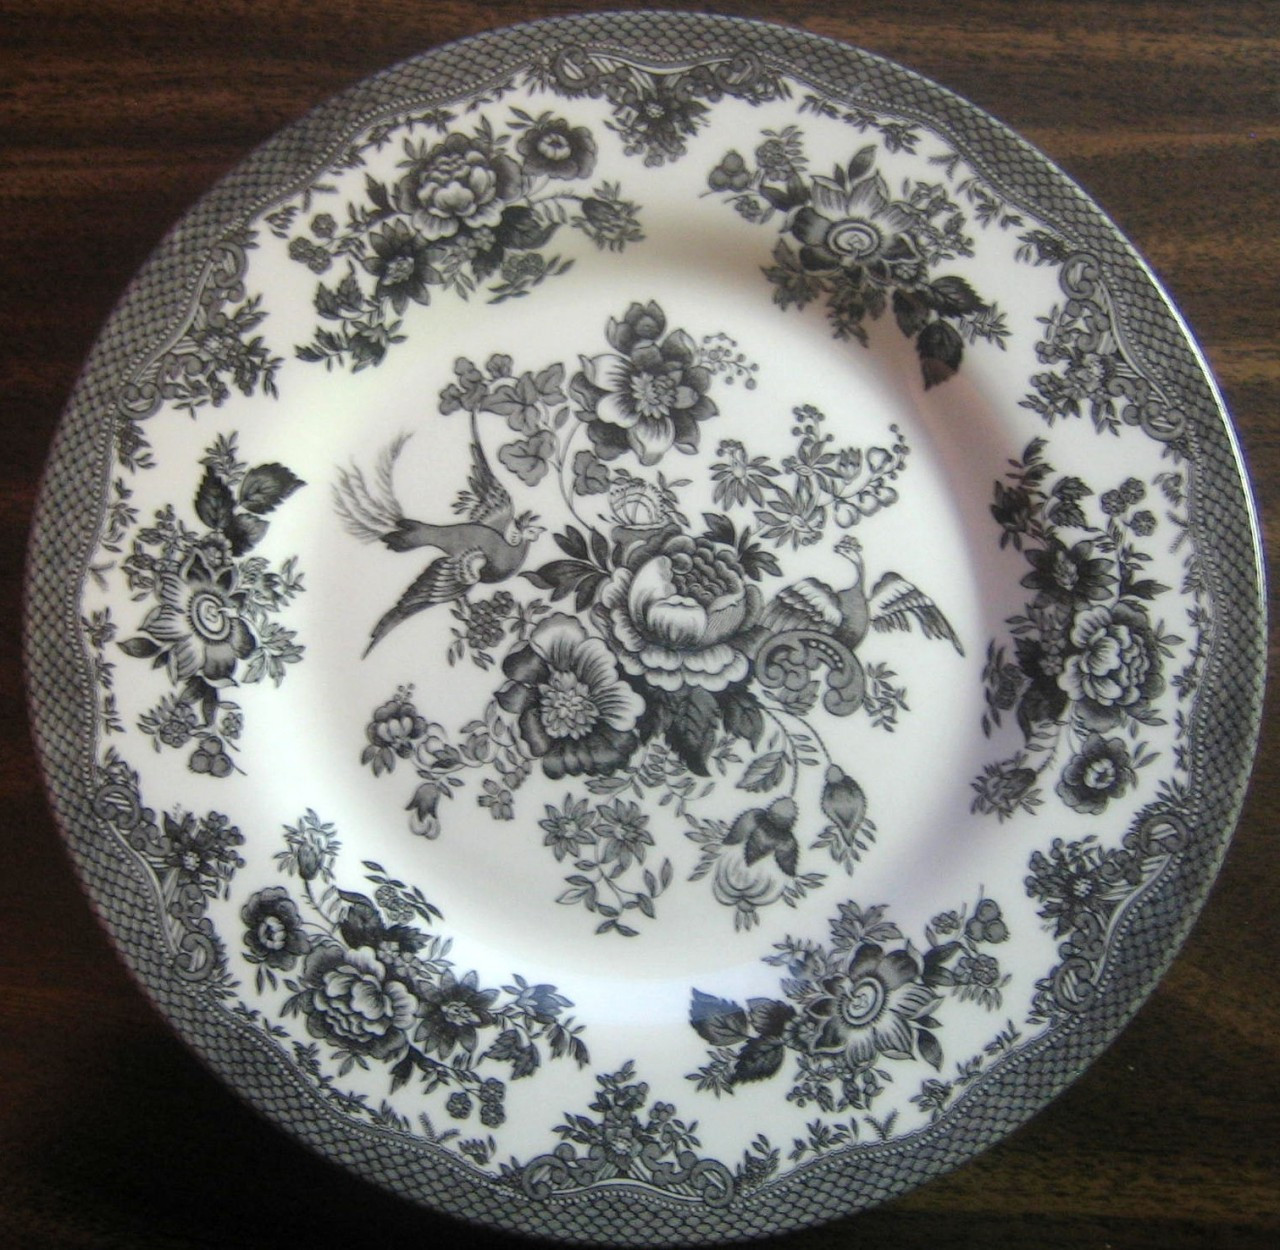 black toile rose exotic bird chinoiserie paris plate m 1. Black Bedroom Furniture Sets. Home Design Ideas